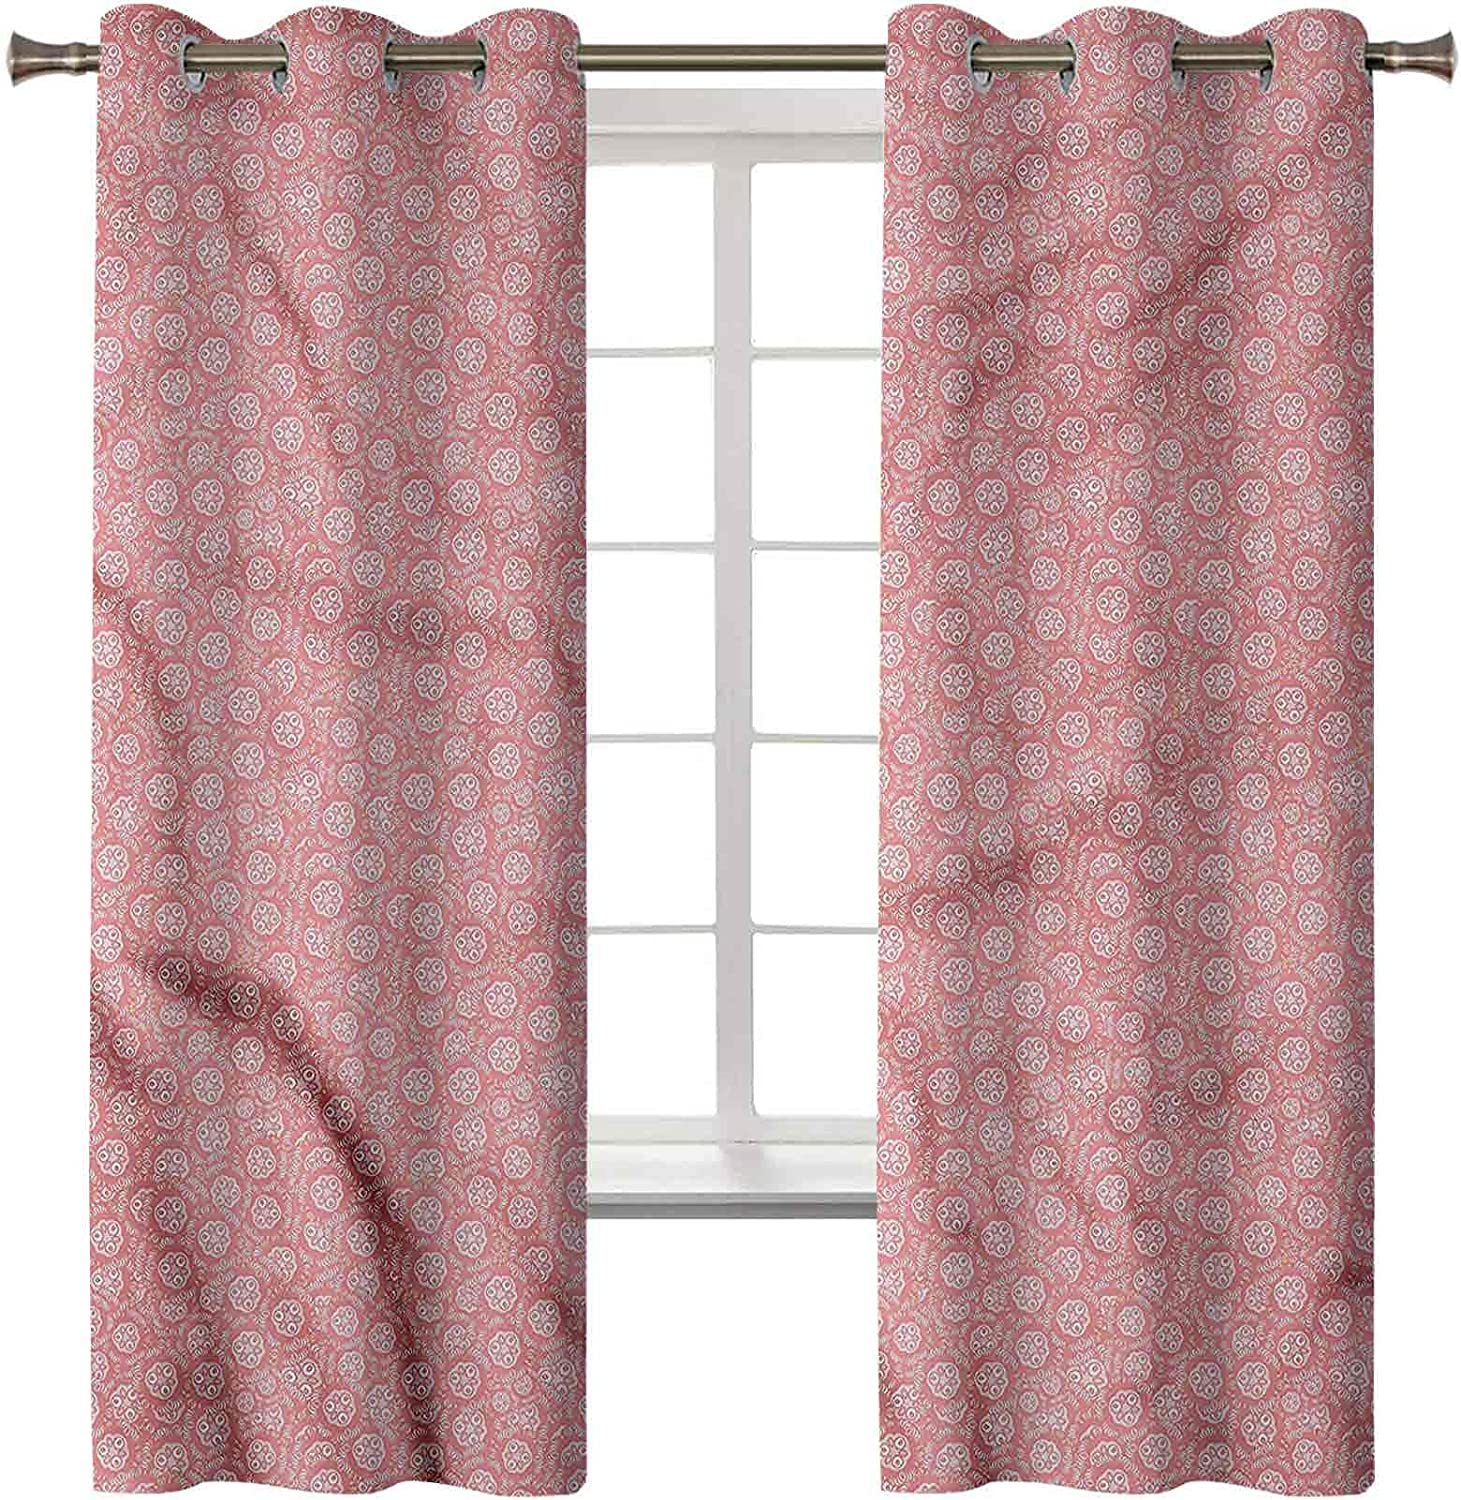 Blackout Curtains Max 69% OFF Thermal Insulated Flora Limited time trial price Drapes Reducing Noise